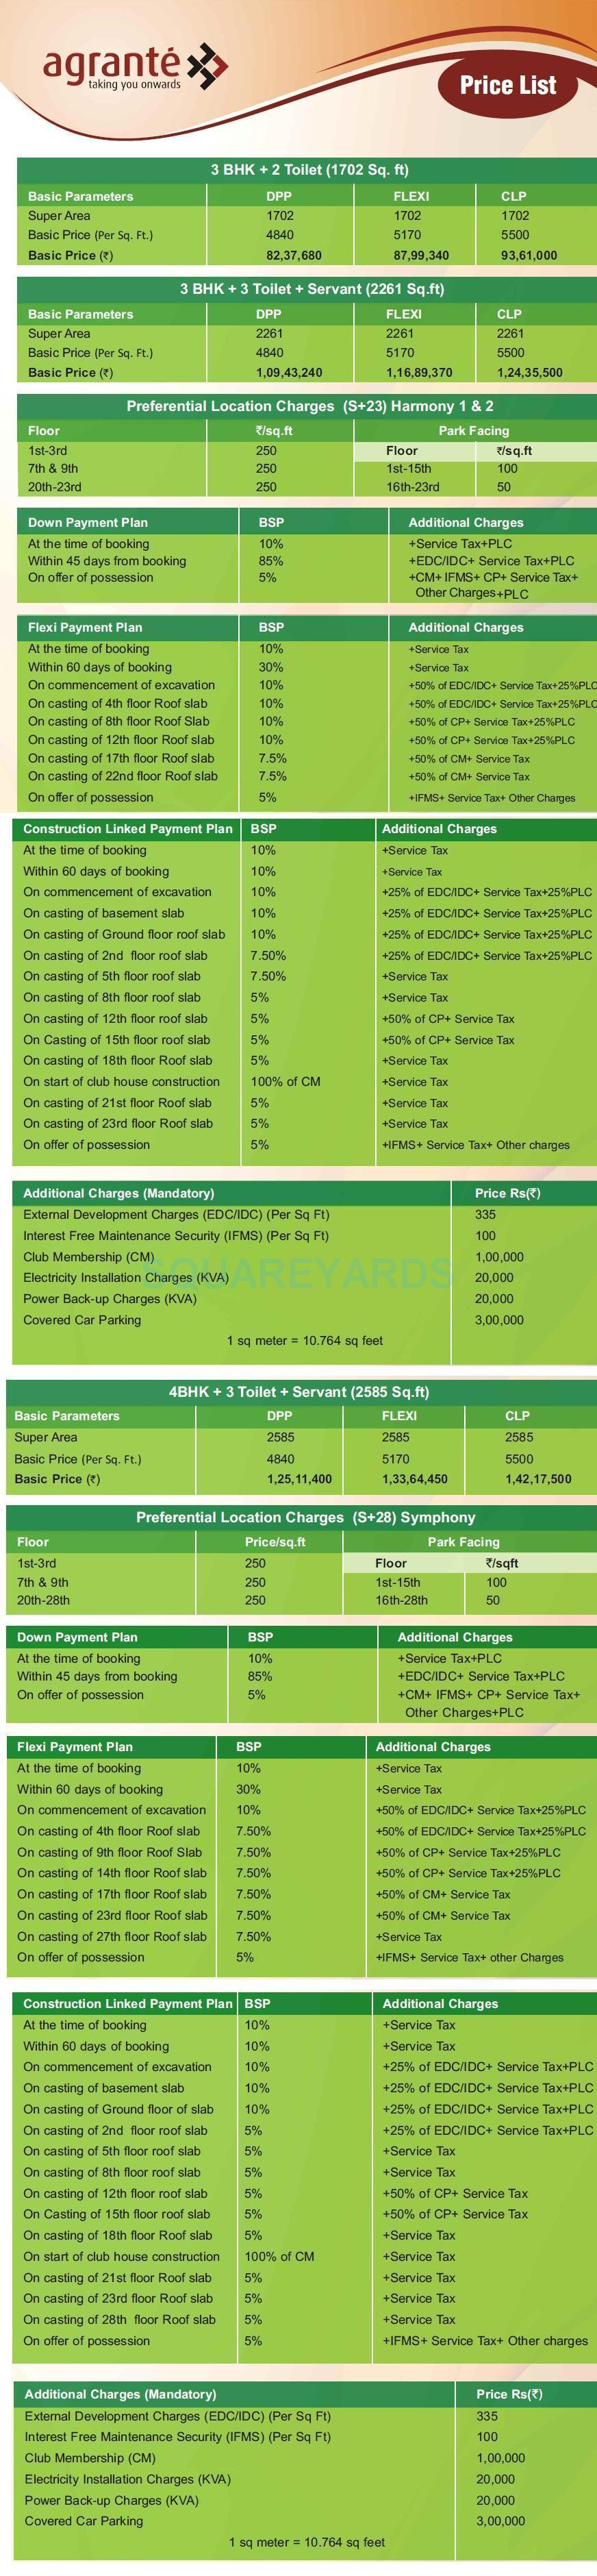 agrante beethoven 8 payment plan image1